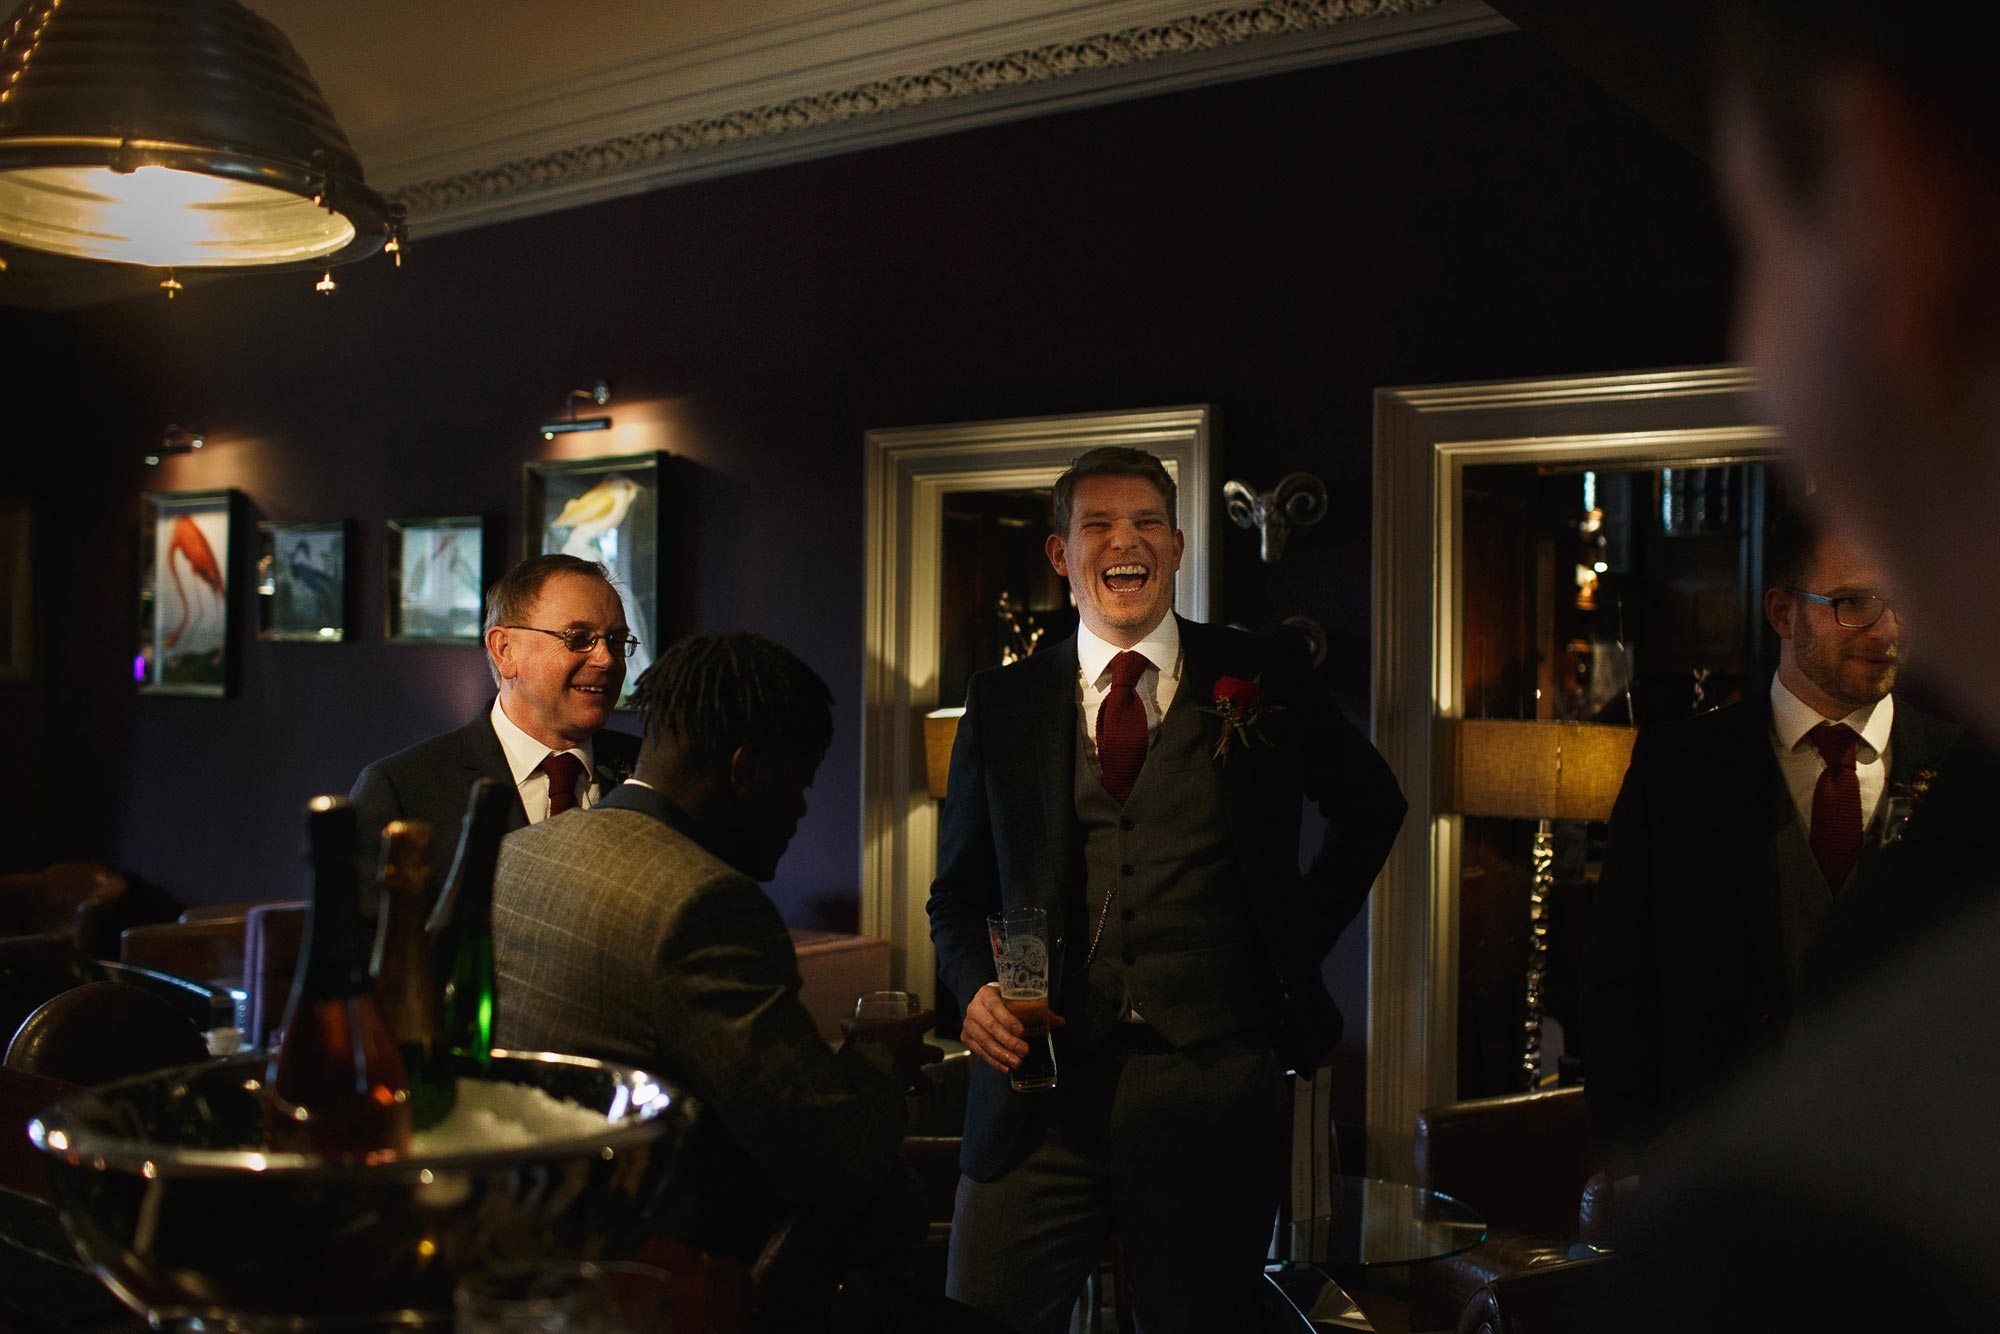 Groom drinking whiskey at the bar with his friends at Mitton Hall